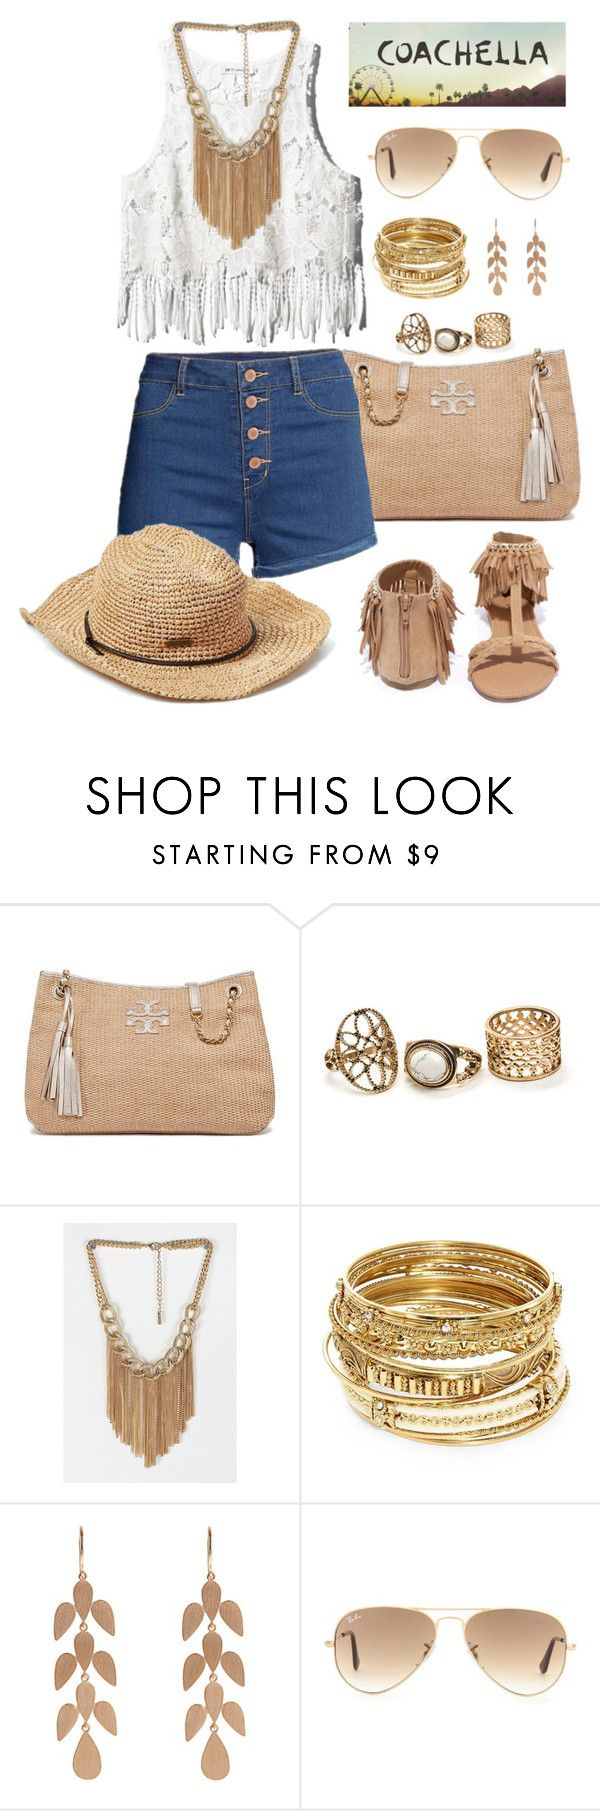 """Untitled #1342"" by mrs-rc ❤ liked on Polyvore featuring Tory Burch, ABS by Allen Schwartz, Irene Neuwirth, Ray-Ban and Qupid"